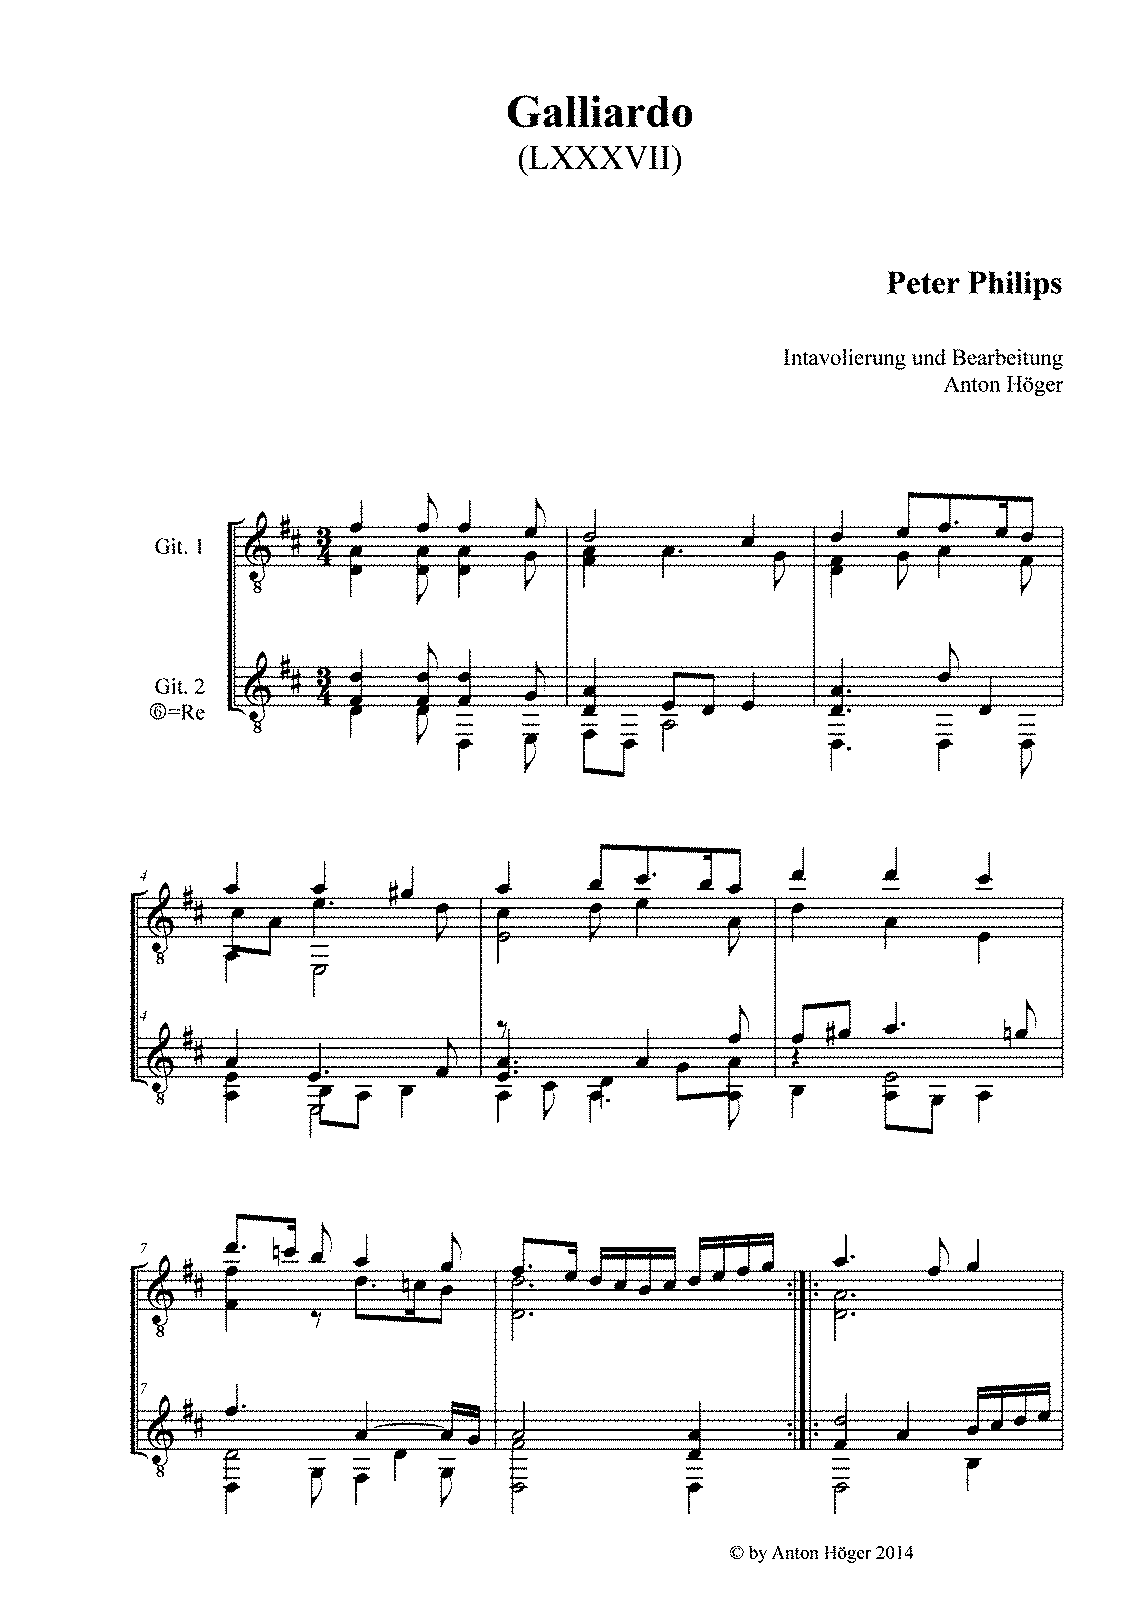 PMLP374620-Philips, Peter - Galliardo LXXXVII -2Git.pdf